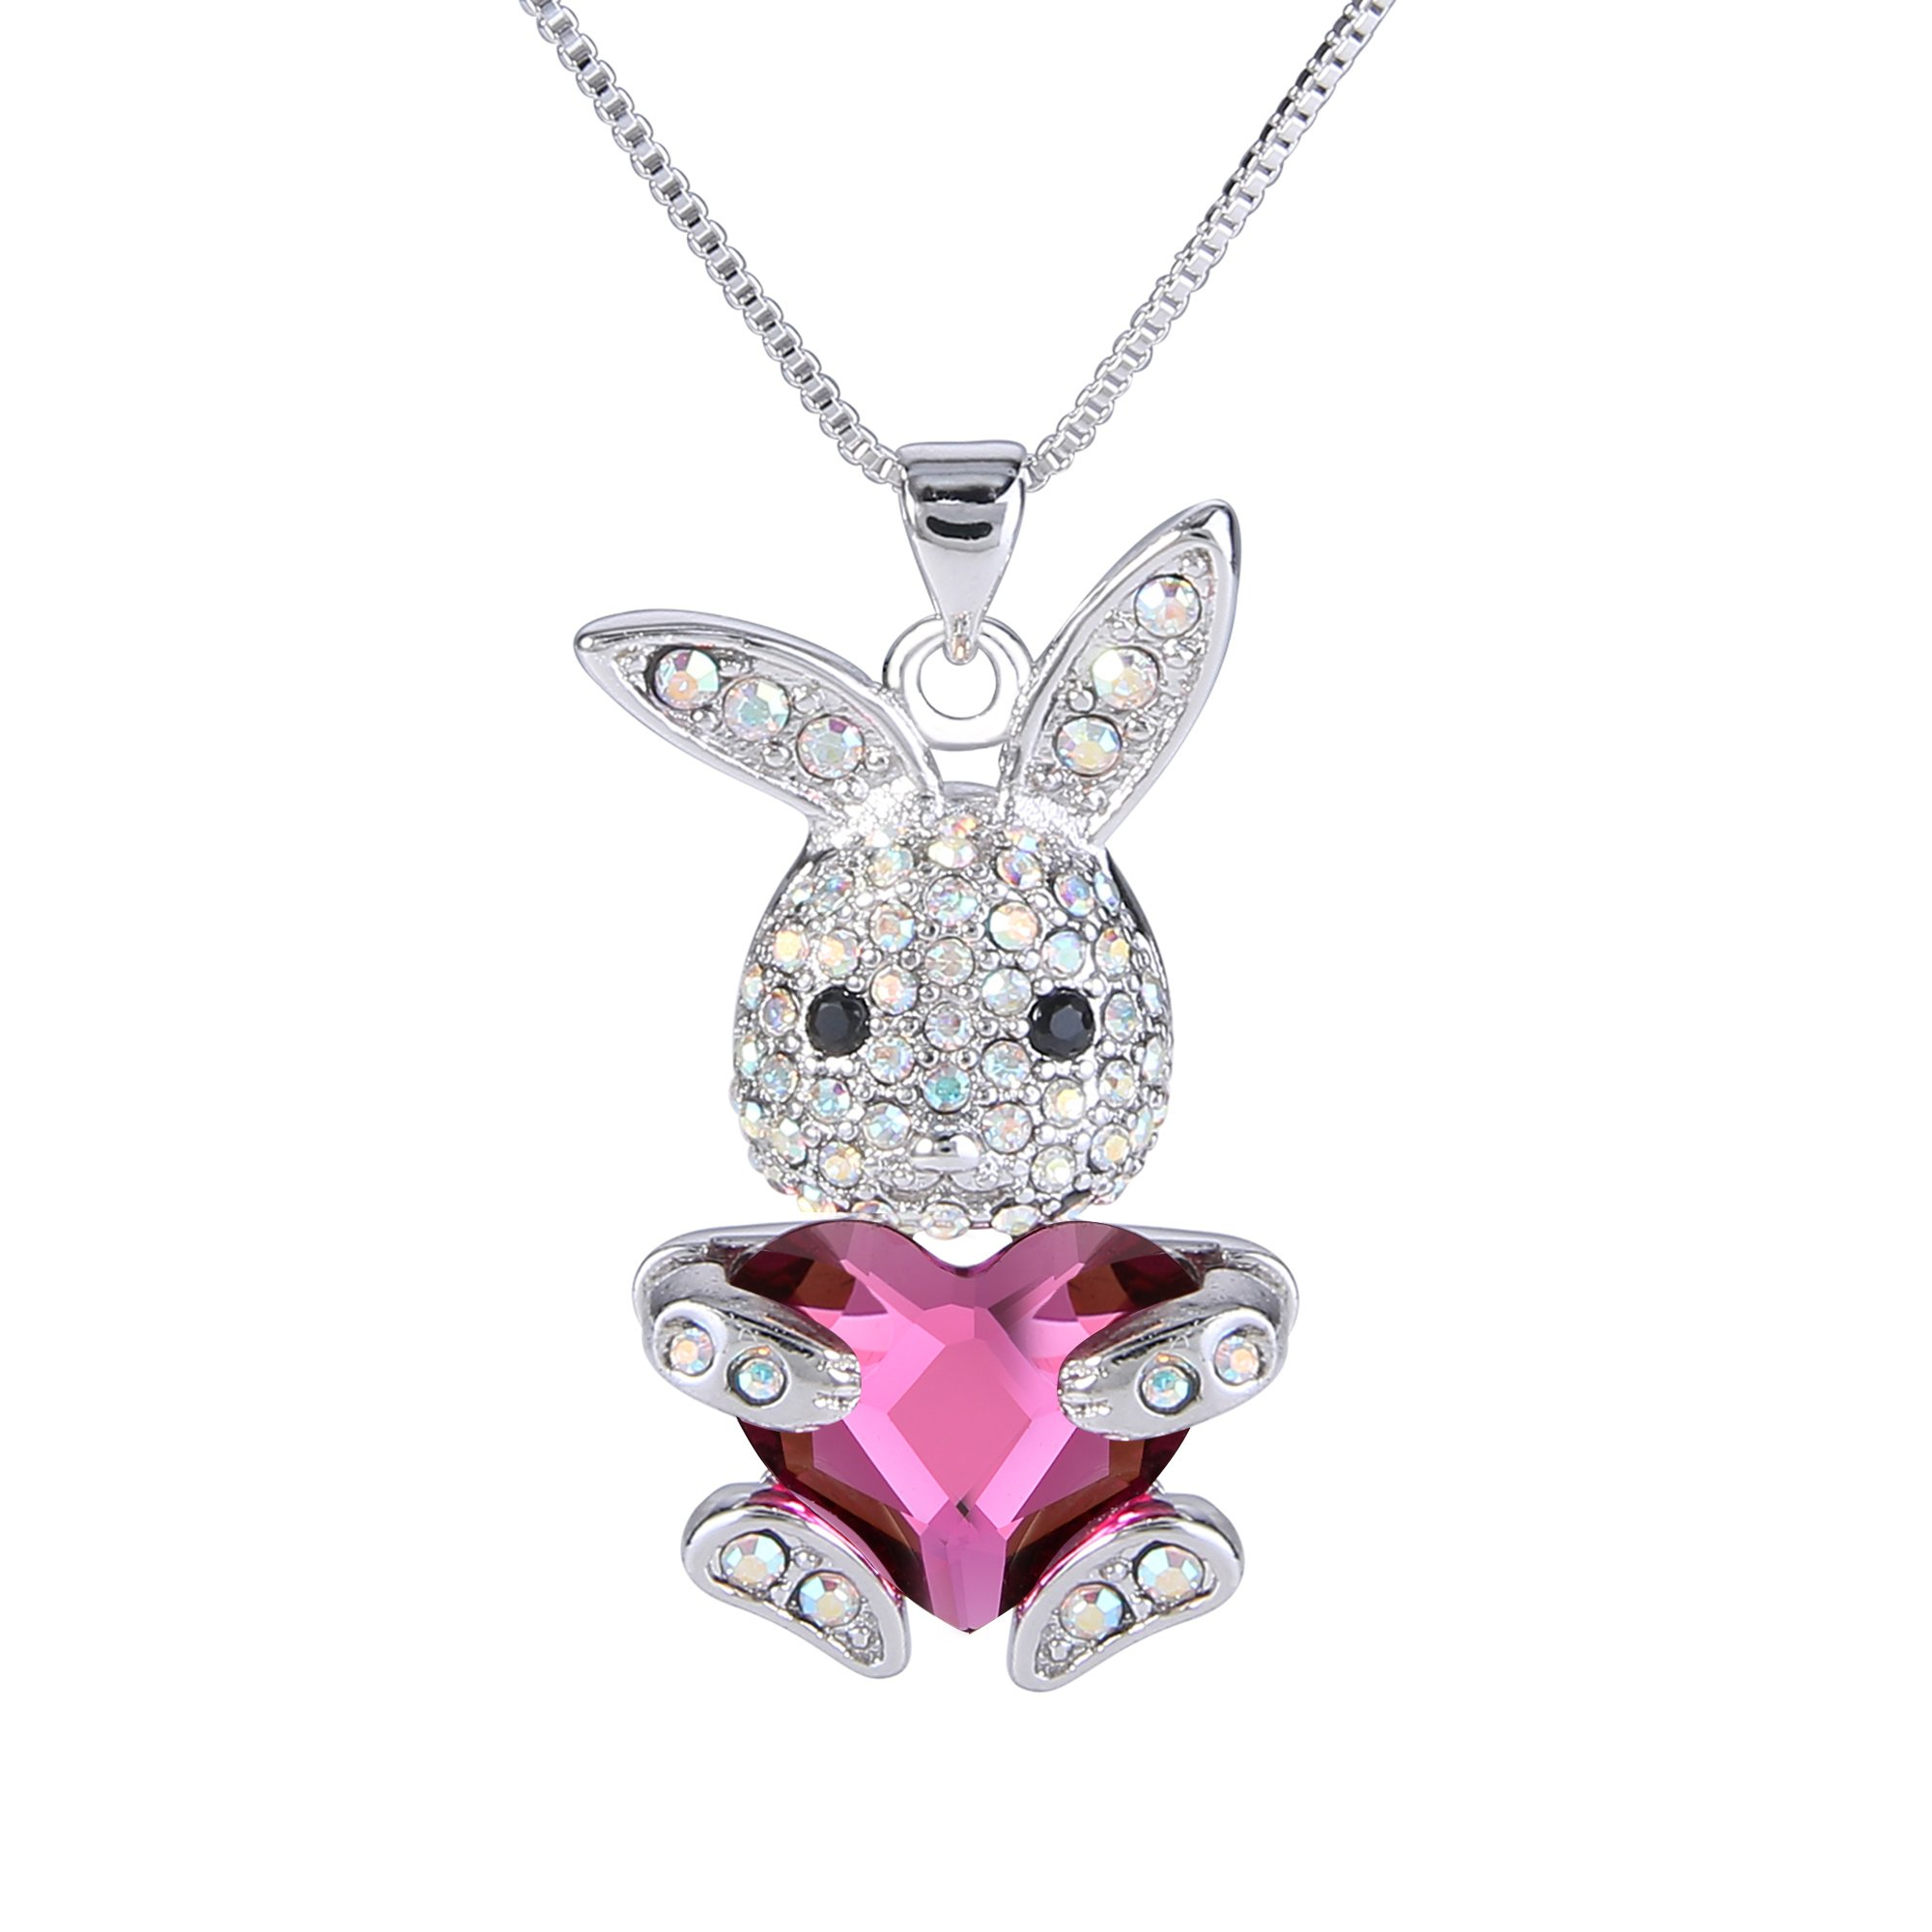 EleQueen Easter Day Women's Silver-tone Pink Bunny Heart Pendant Necklace Adorned with Swarovski Crystals